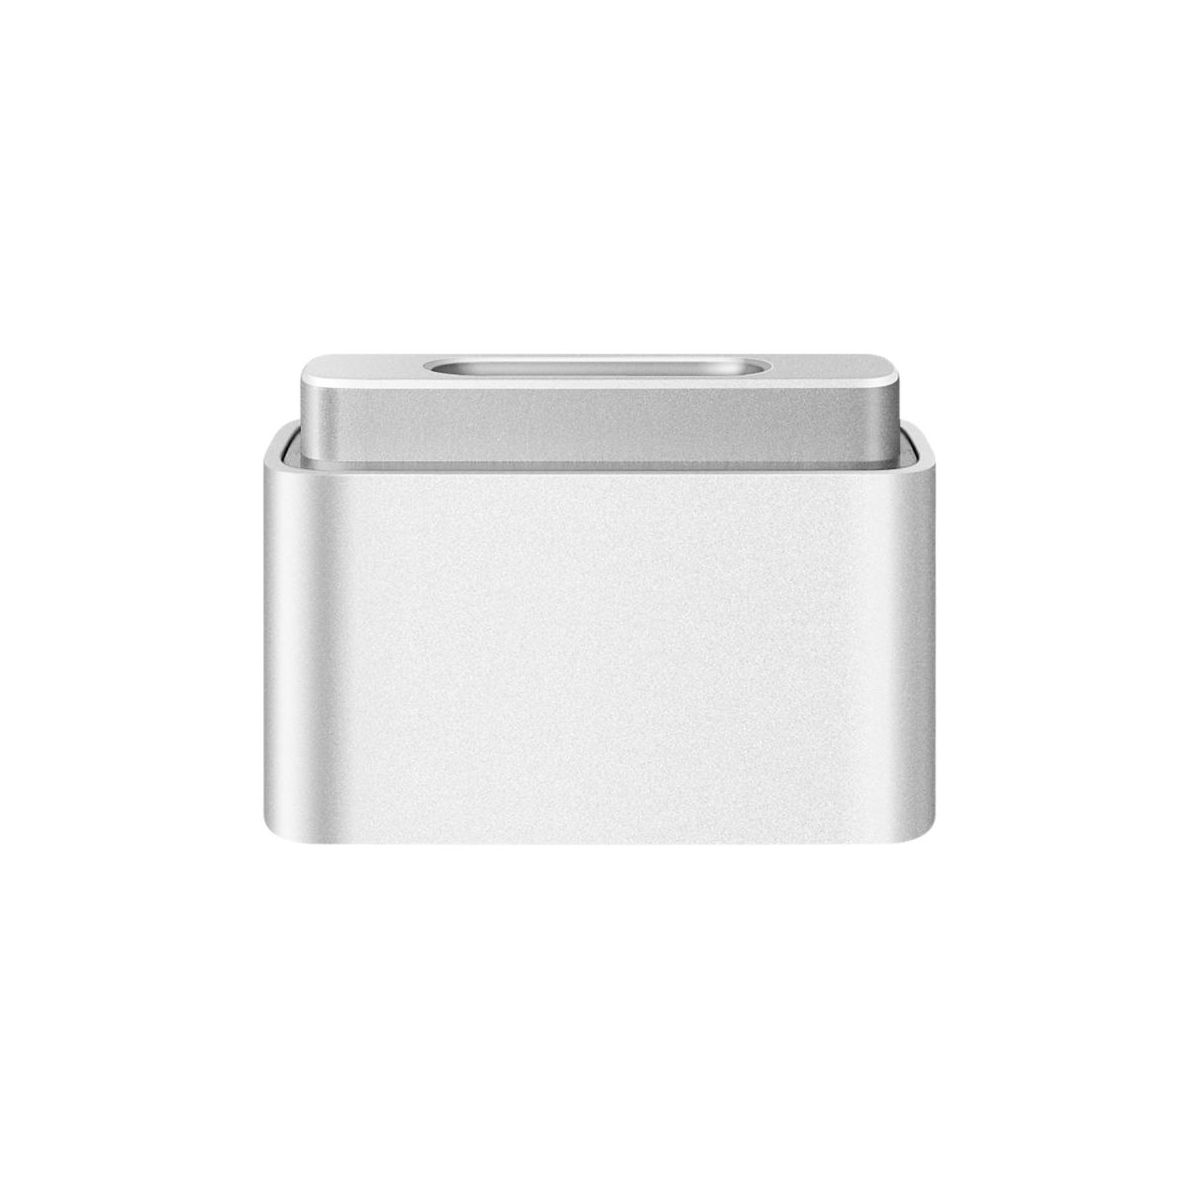 Adaptateur apple mac magsafe vers magsafe 2 (photo)